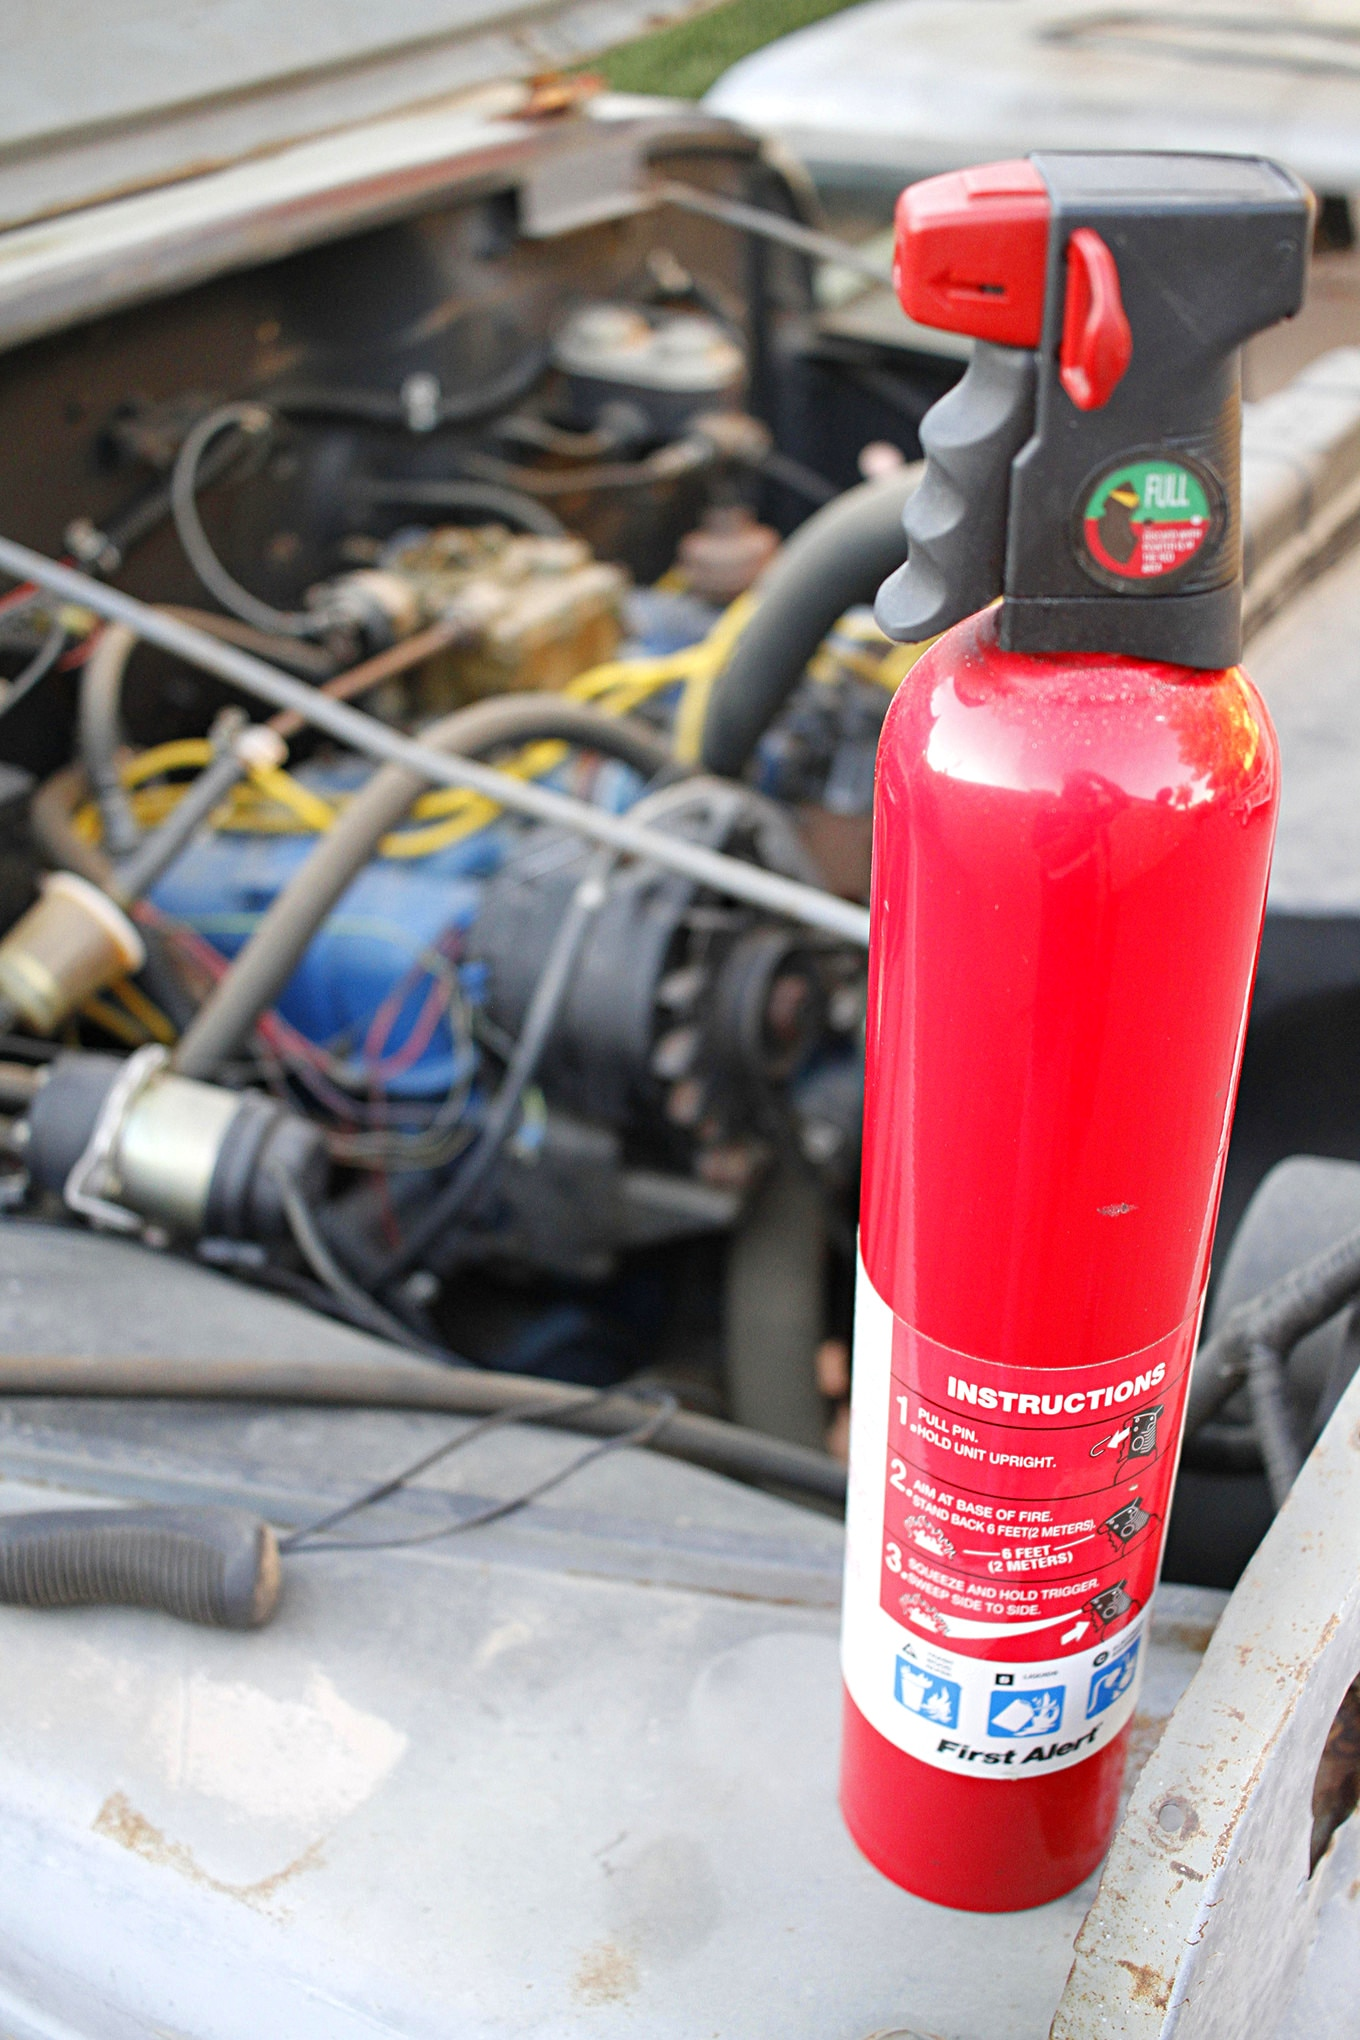 014 old engine startup fire extinguisher